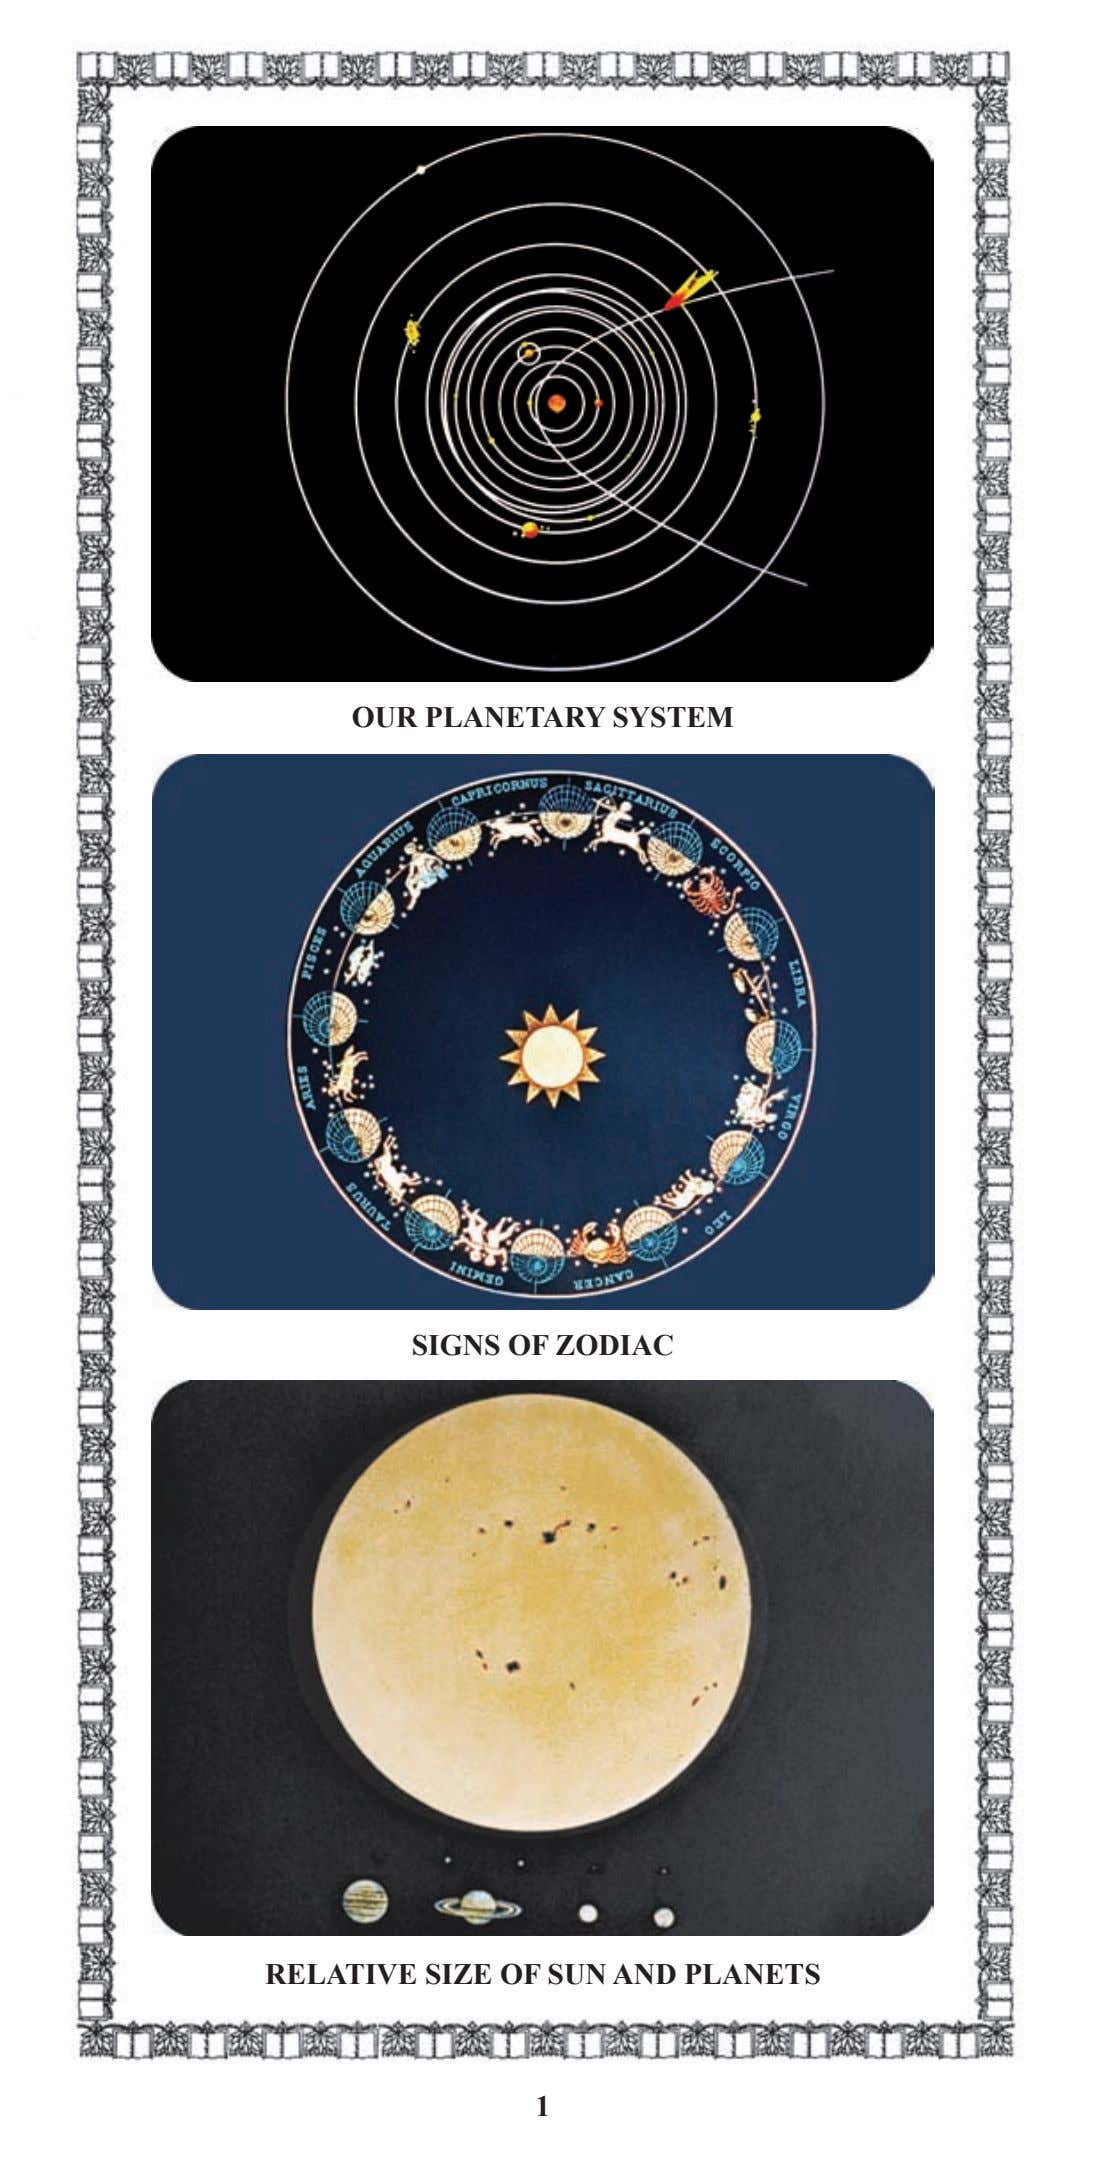 OUR PLANETARY SYSTEM SIGNS OF ZODIAC RELATIVE SIZE OF SUN AND PLANETS 1